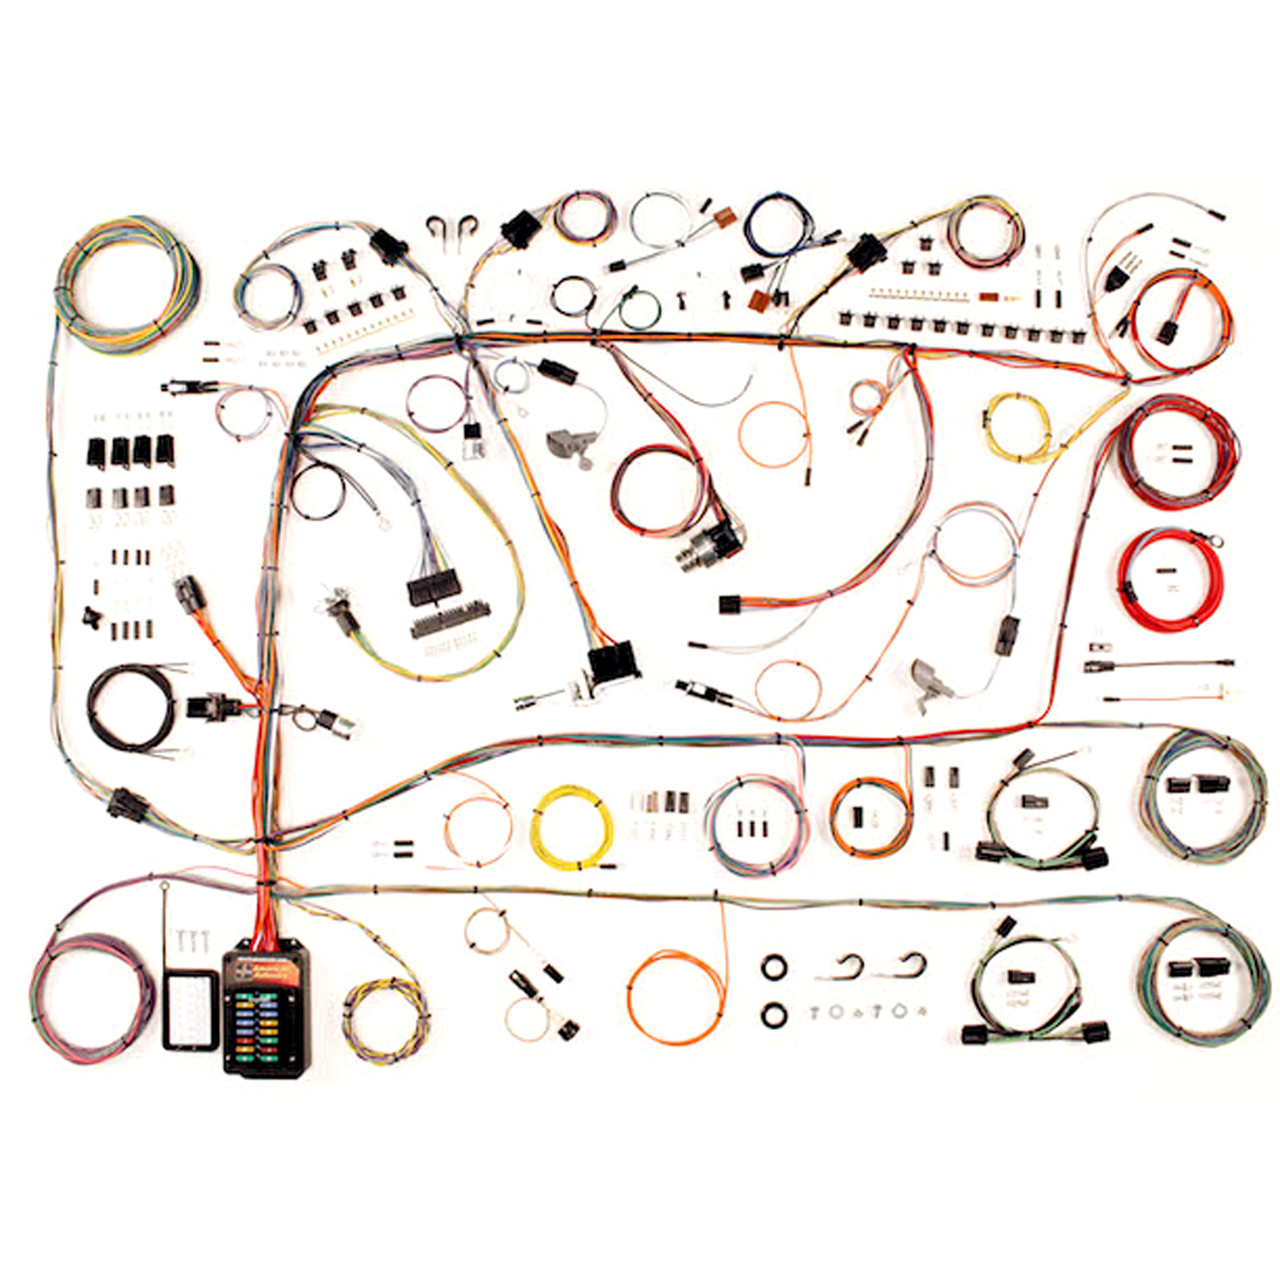 1960 1961 1962 1963 FORD FALCON HEADLAMP WIRING EXTENSION